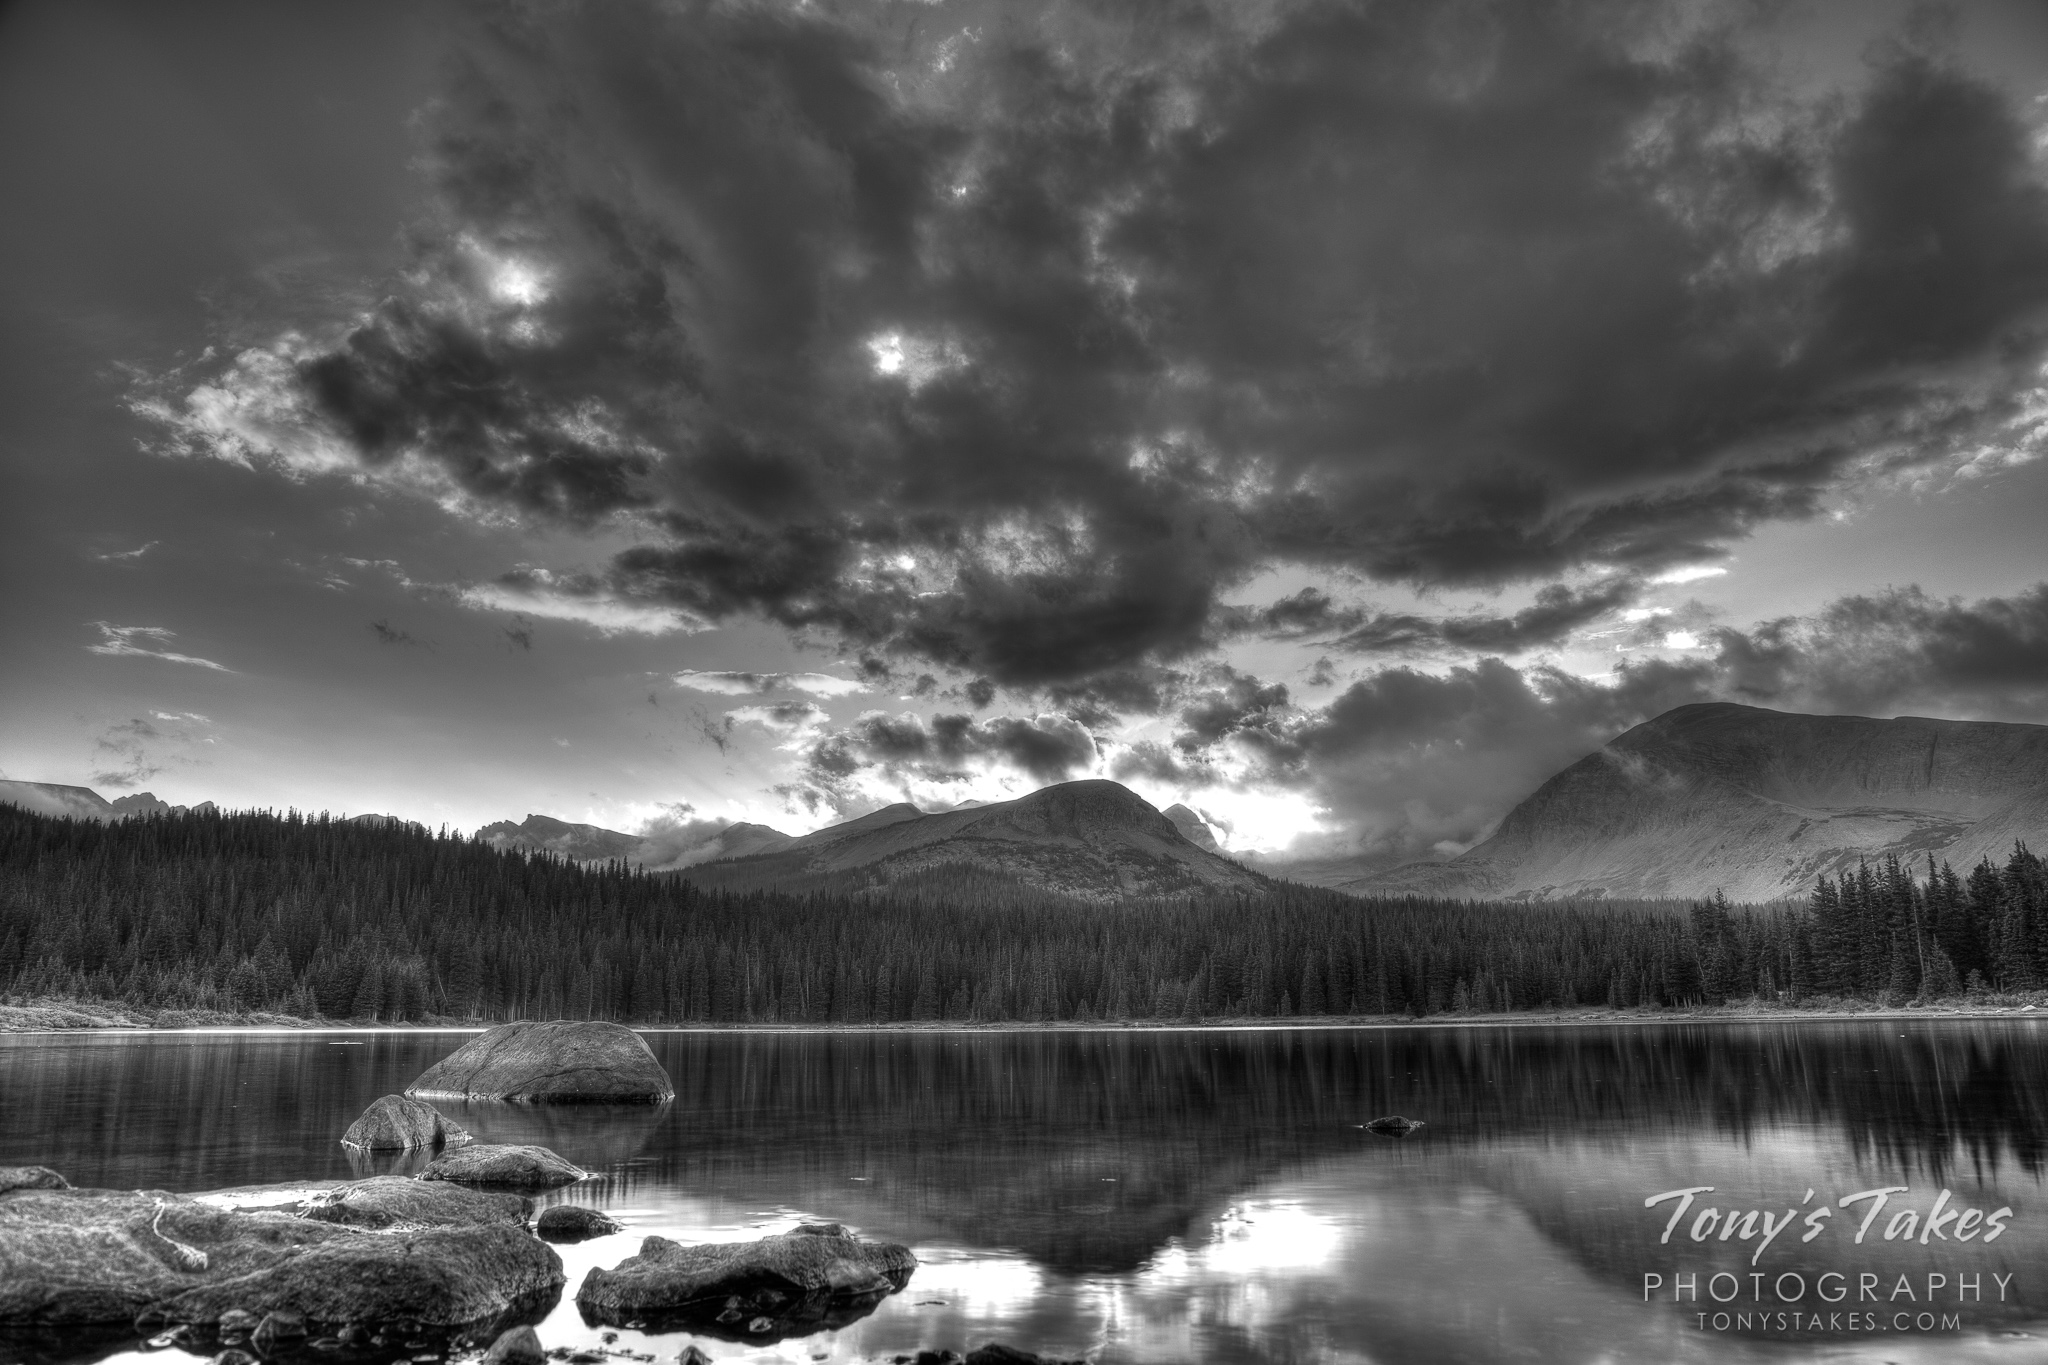 A sunset in Colorado's high country in black and white.  (© Tony's Takes)